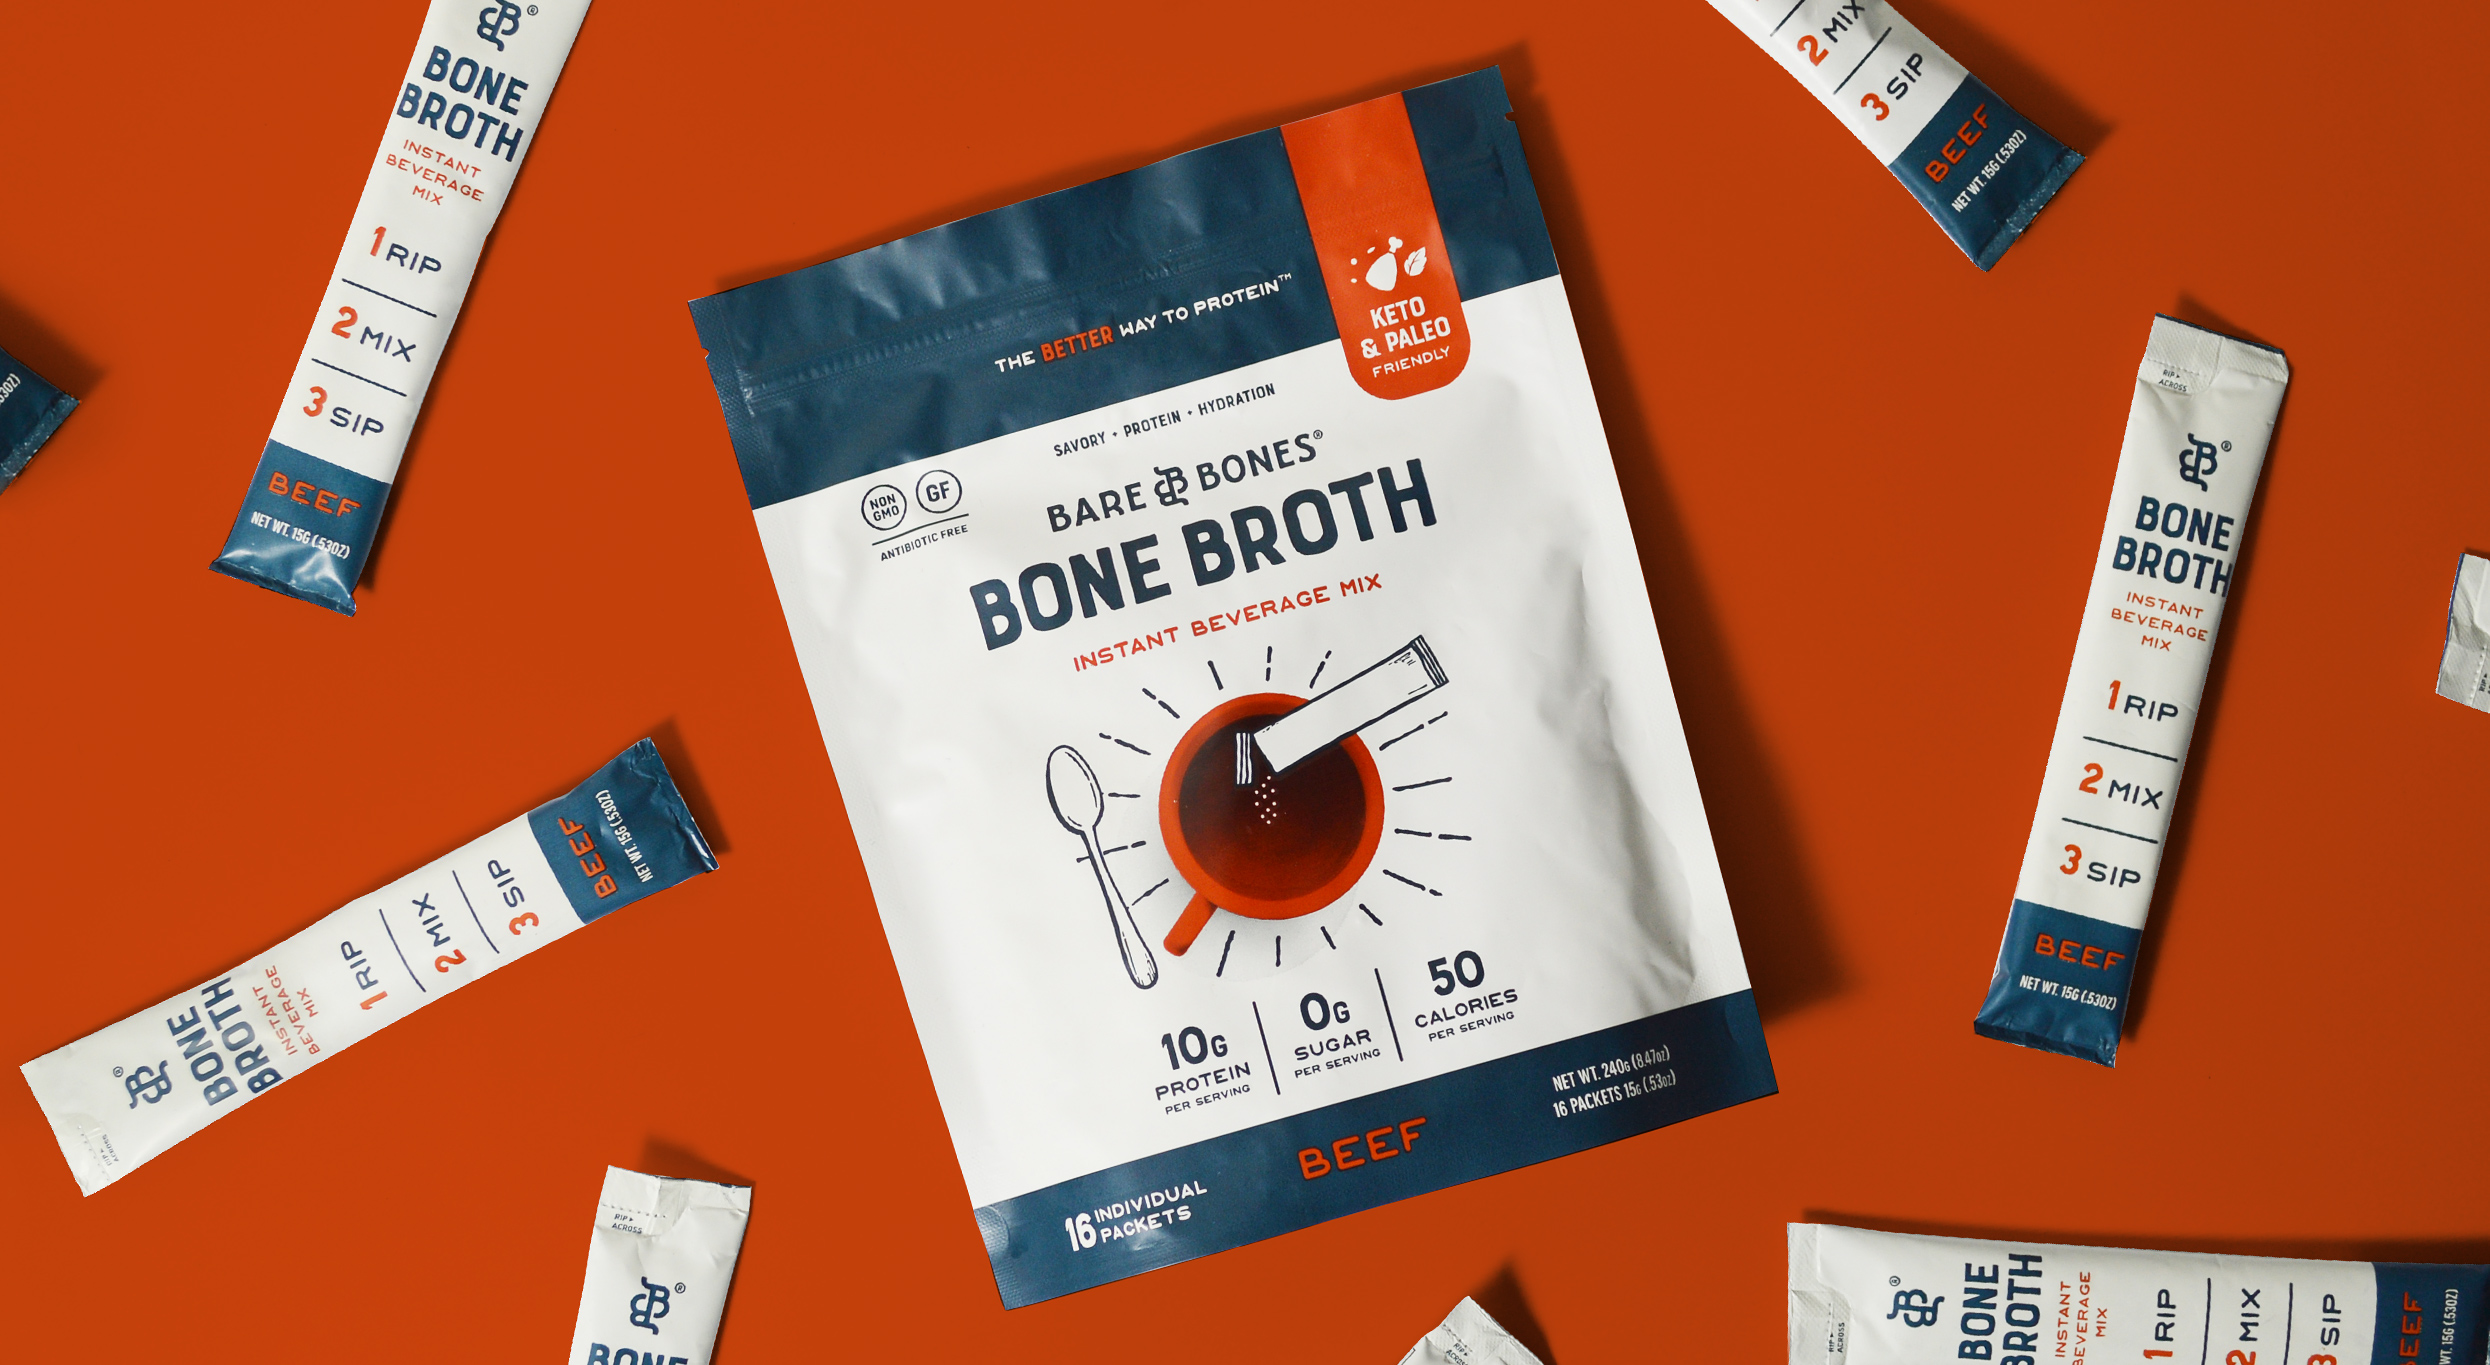 Macaroni Creative Creates New Look for Bare Bones Bone Broth